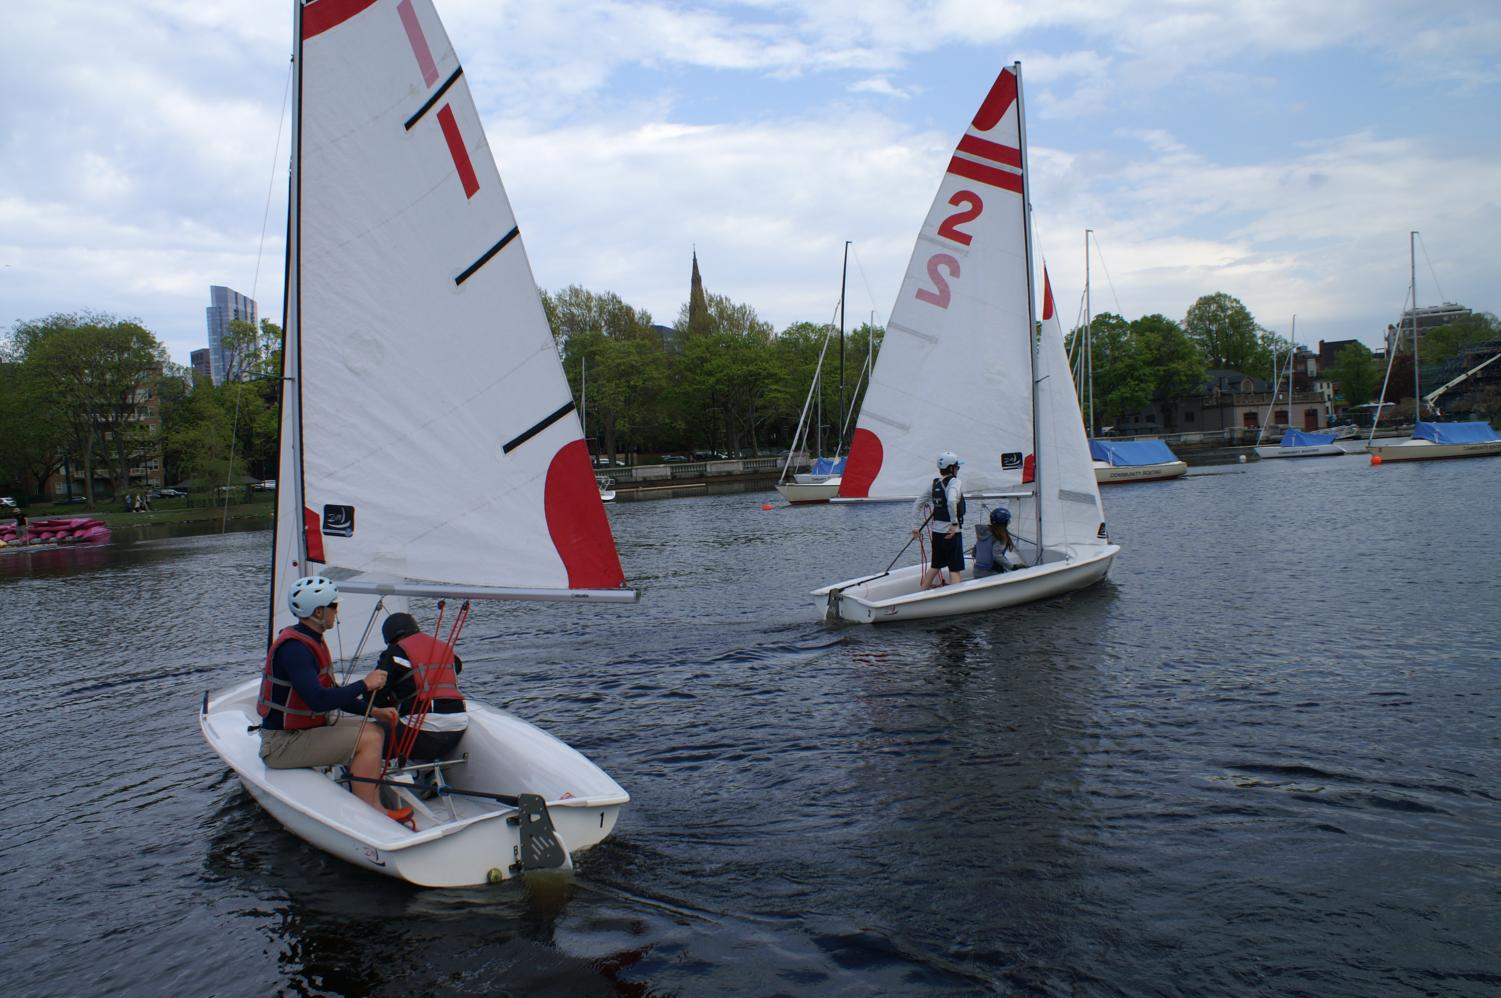 18 students make up the CRLS sailing team.